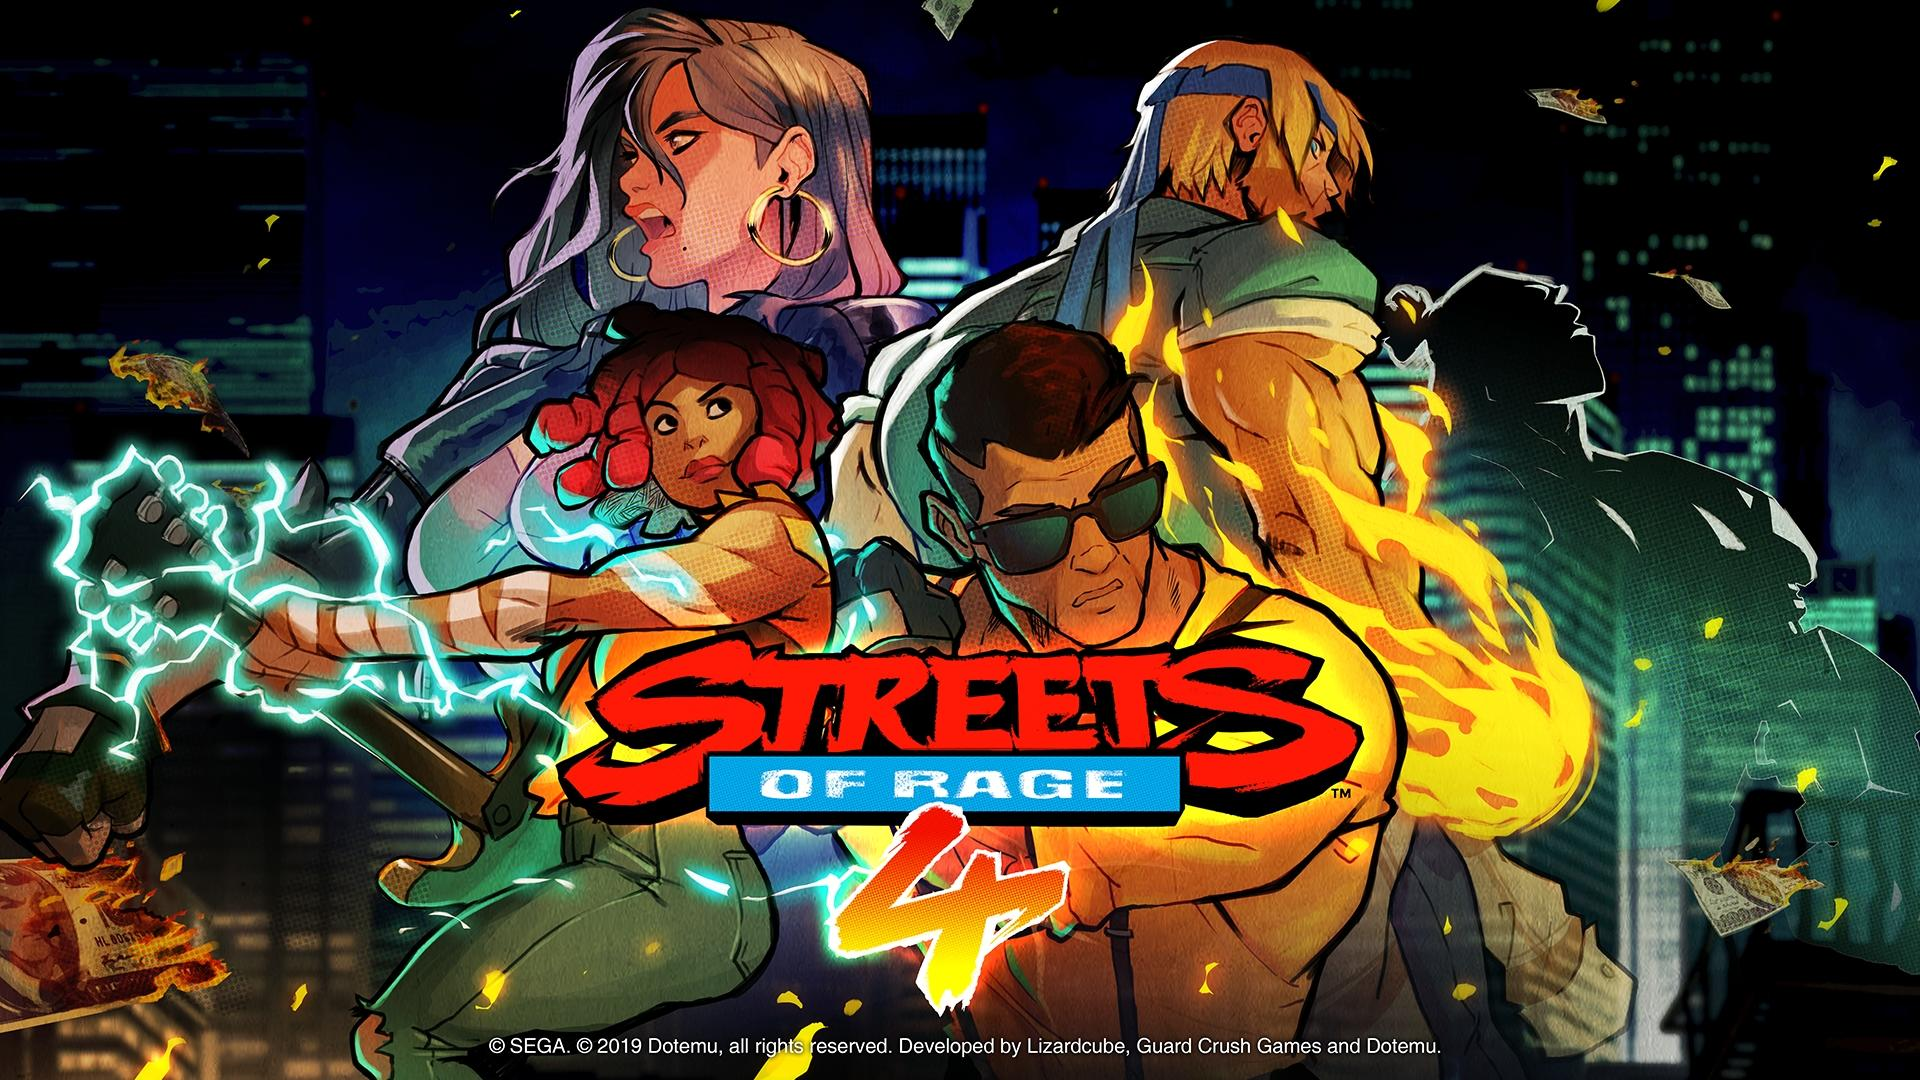 Streets of Rage 4 with four diverse characters ready for a brawl